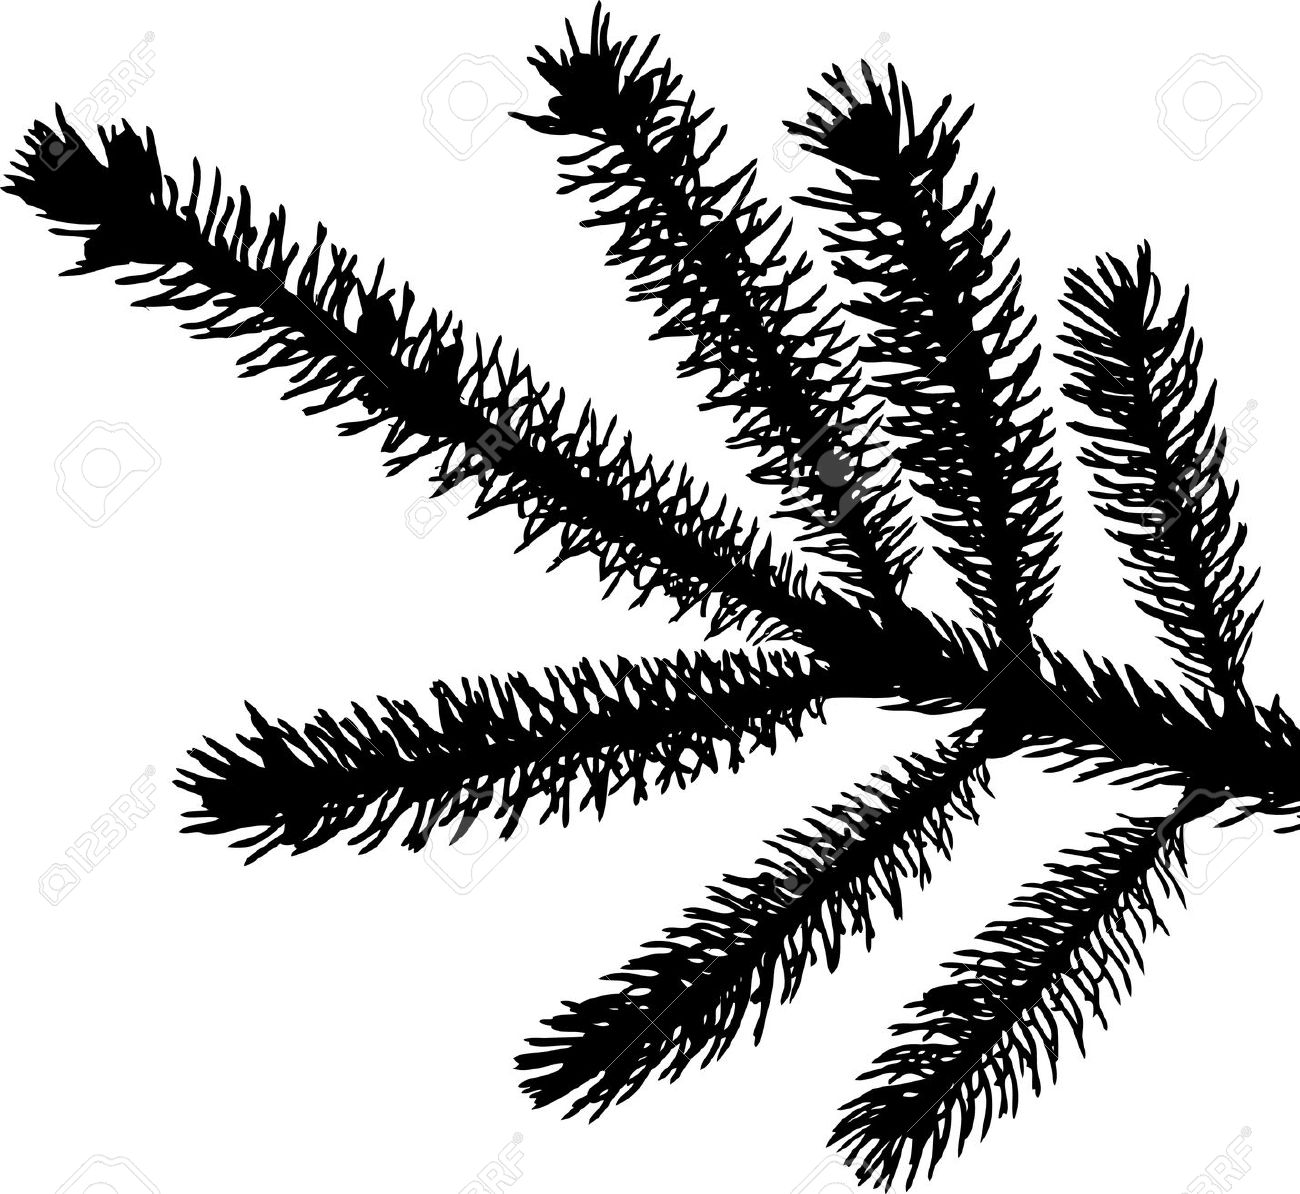 Needle tree black and white clipart.